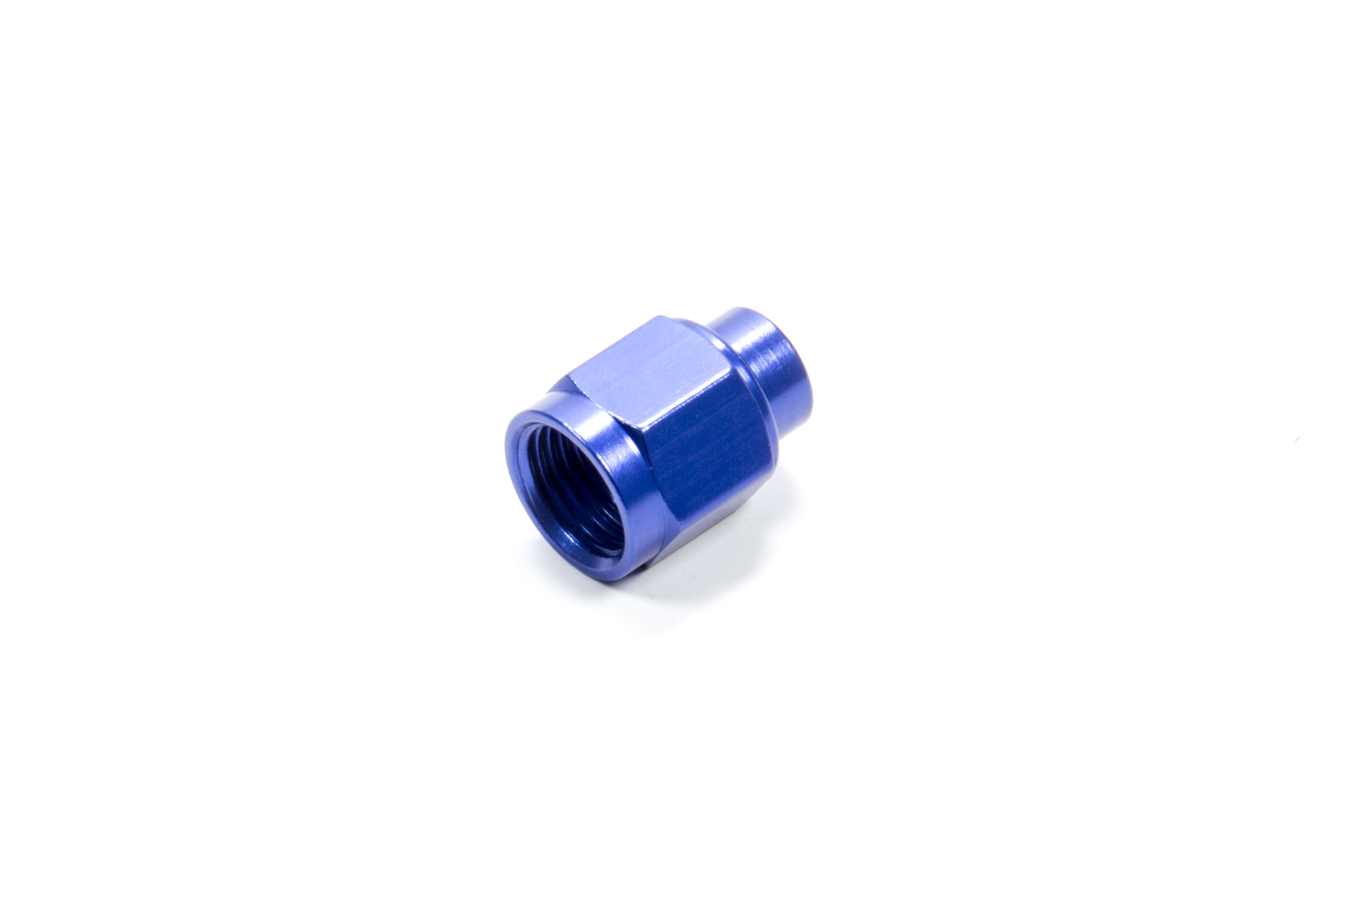 Fragola 492906 Fitting, Cap, 6 AN, Aluminum, Blue Anodize, Each